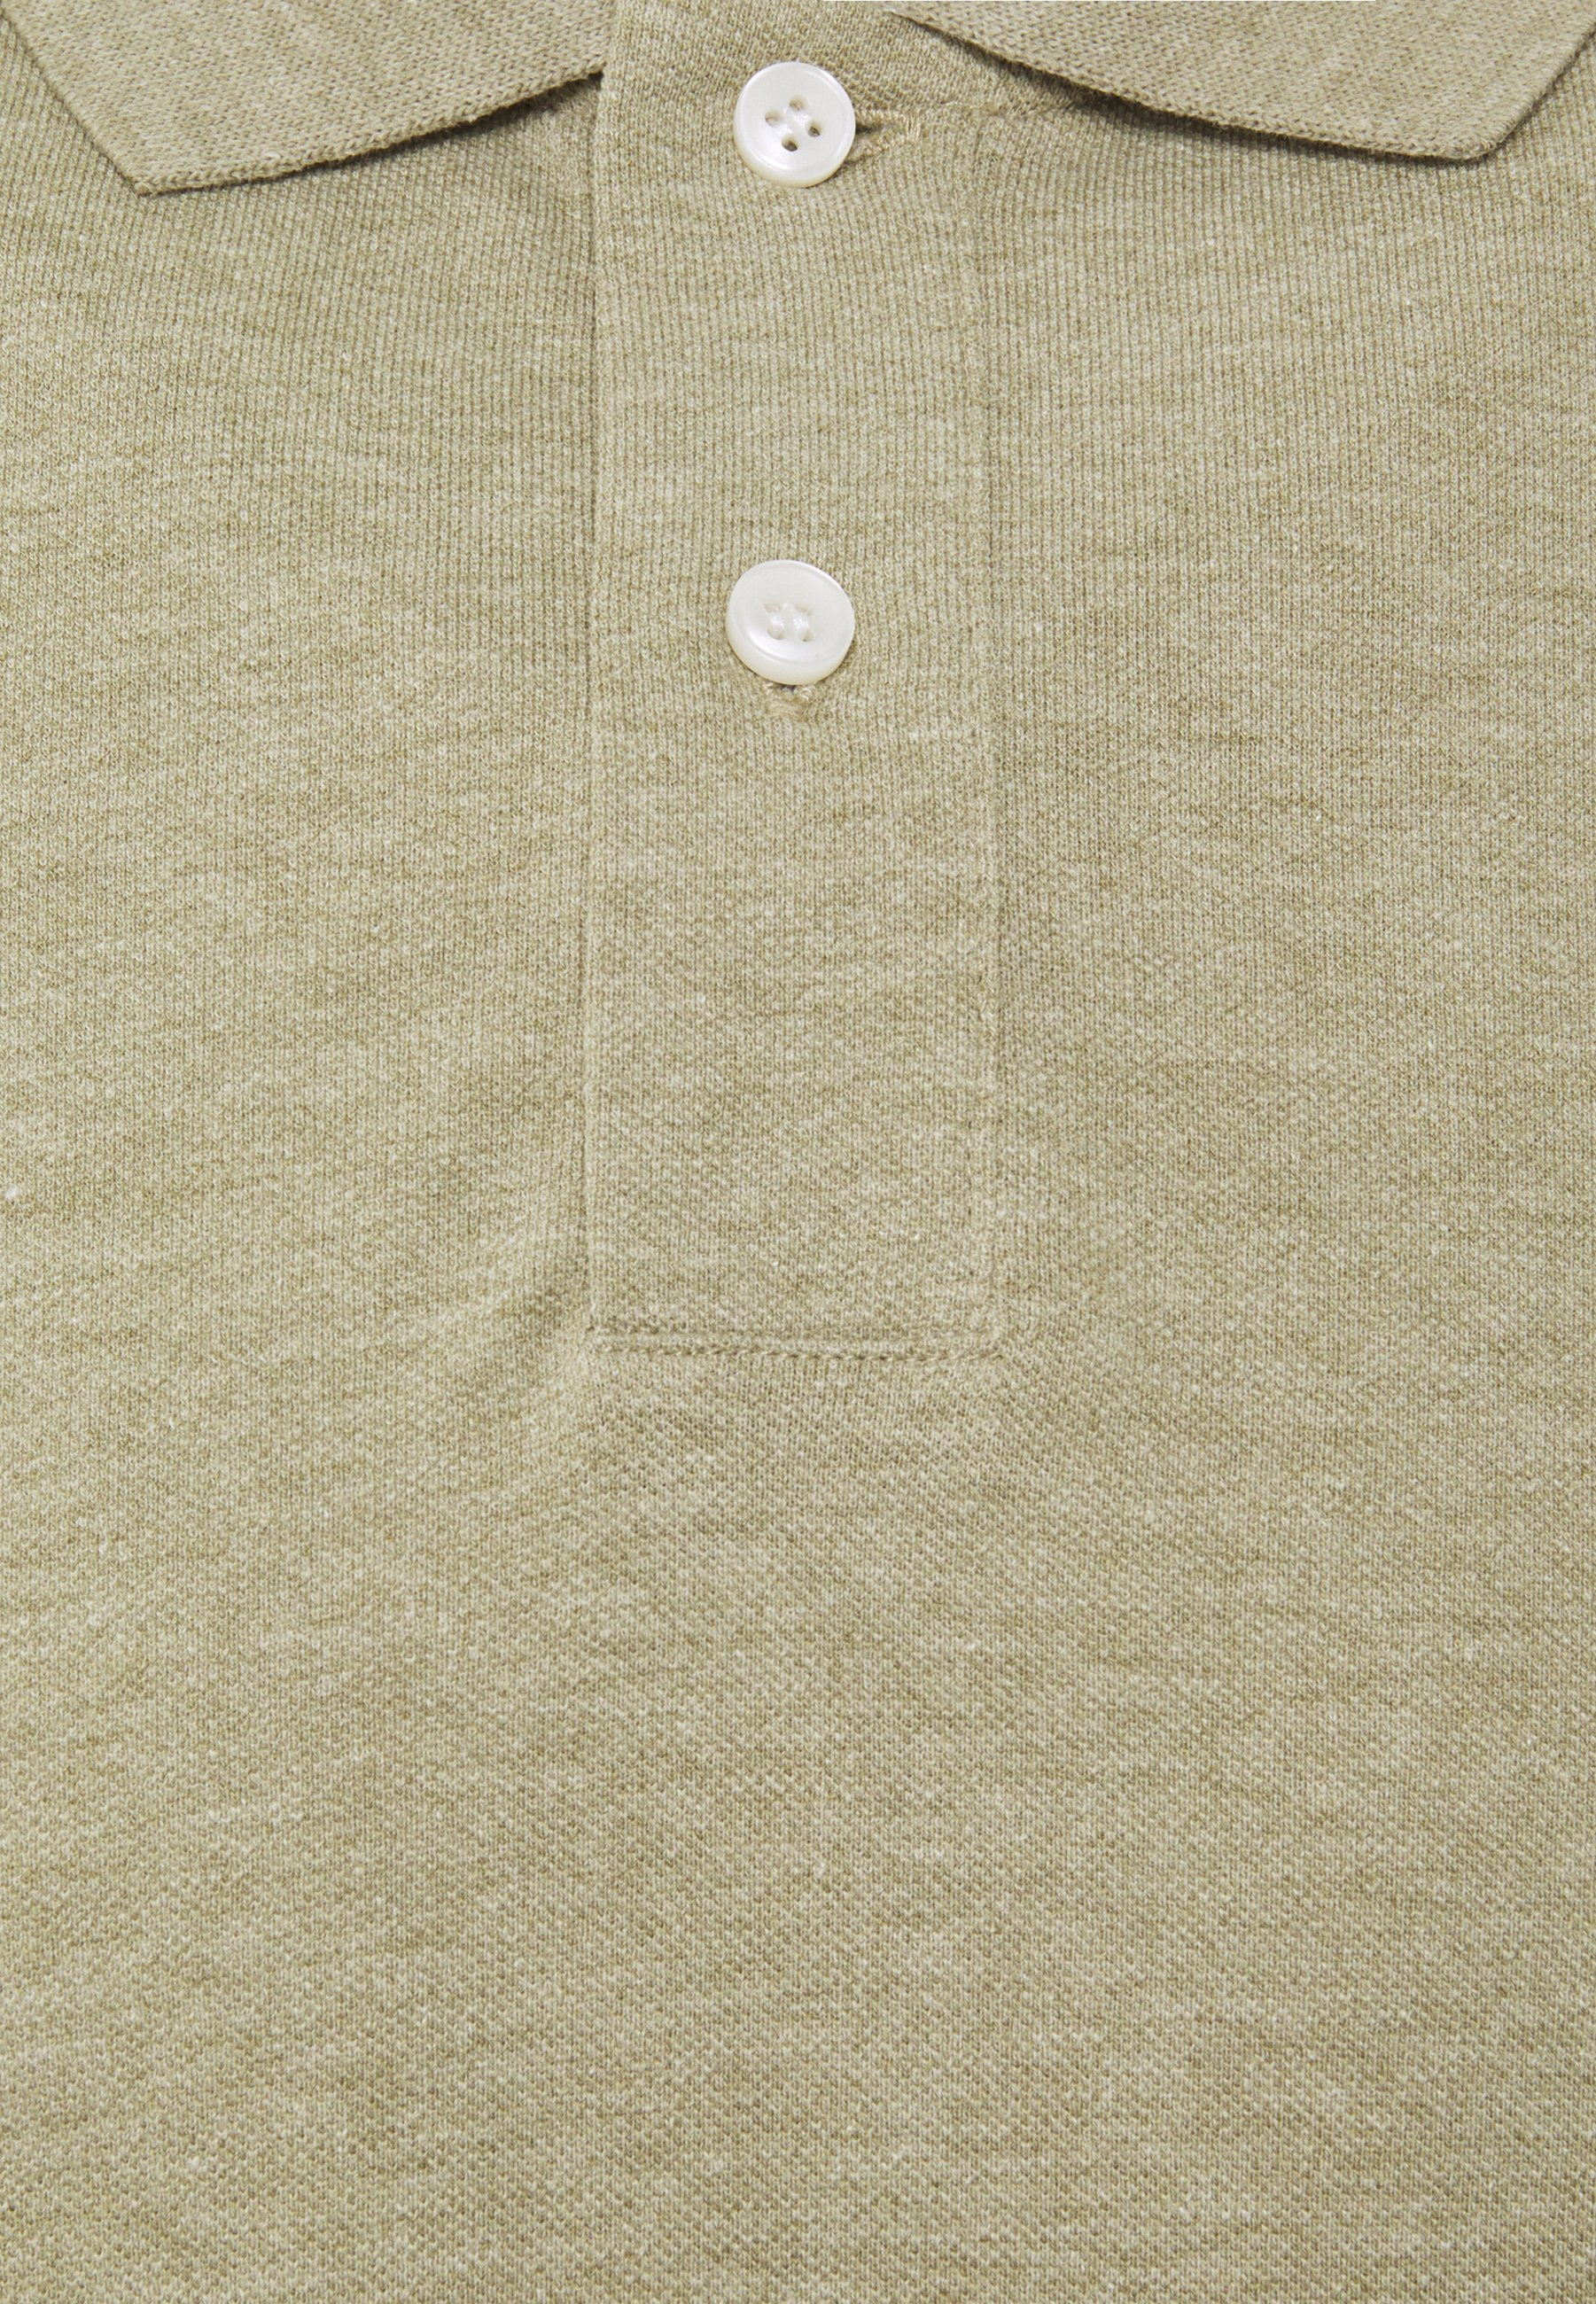 Esprit Polo shirt - olive 94lXy